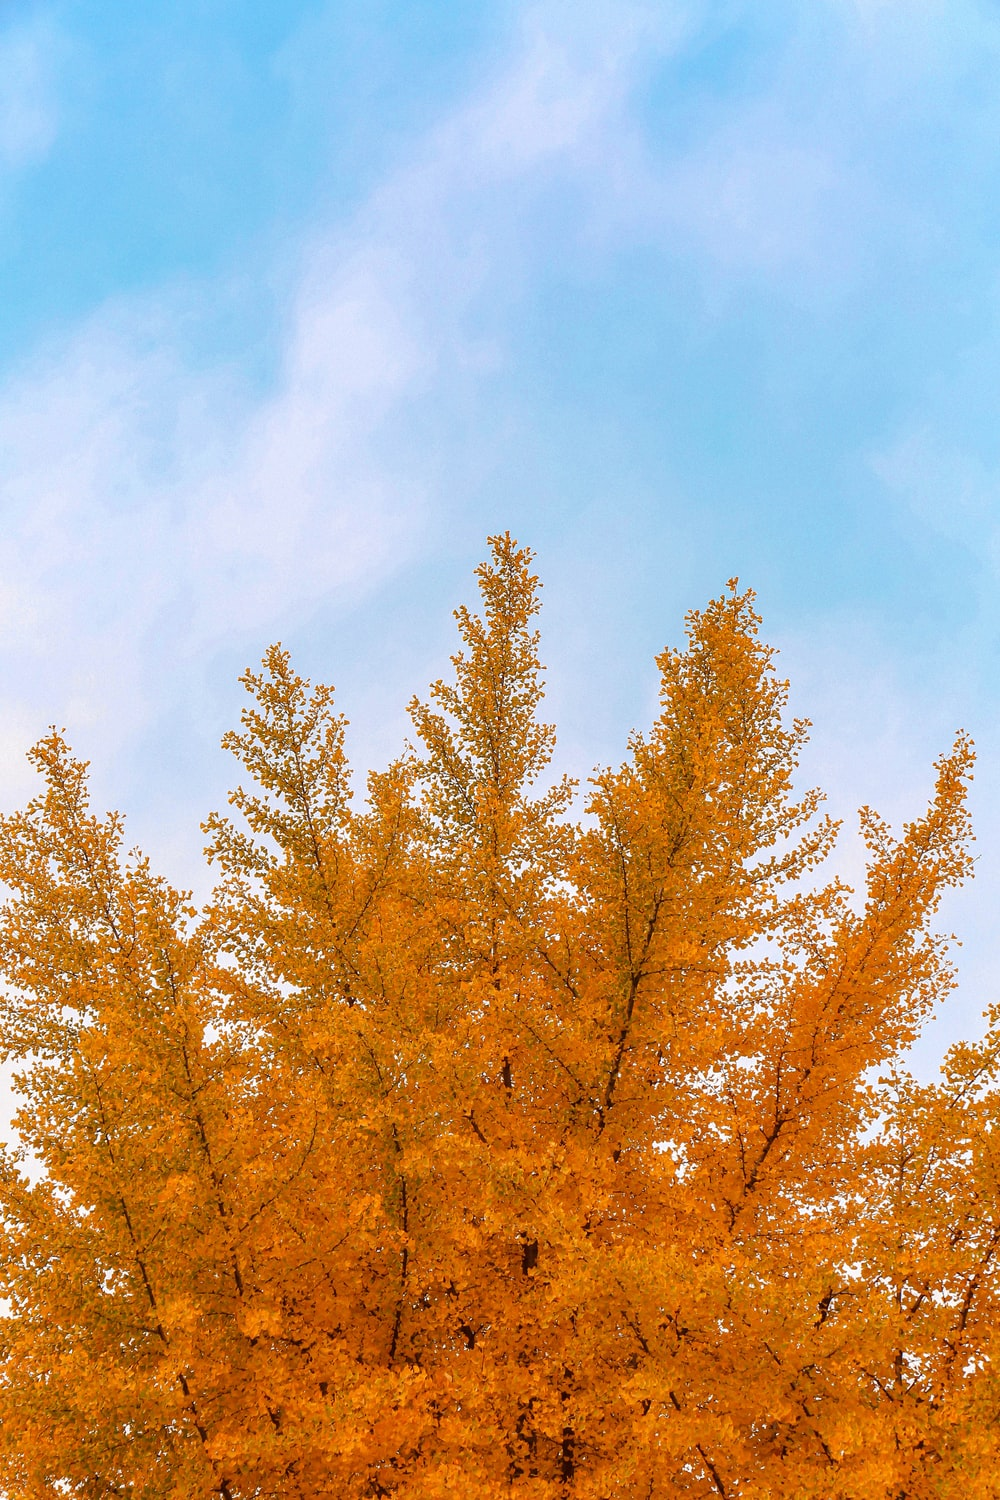 brown trees under blue sky during daytime